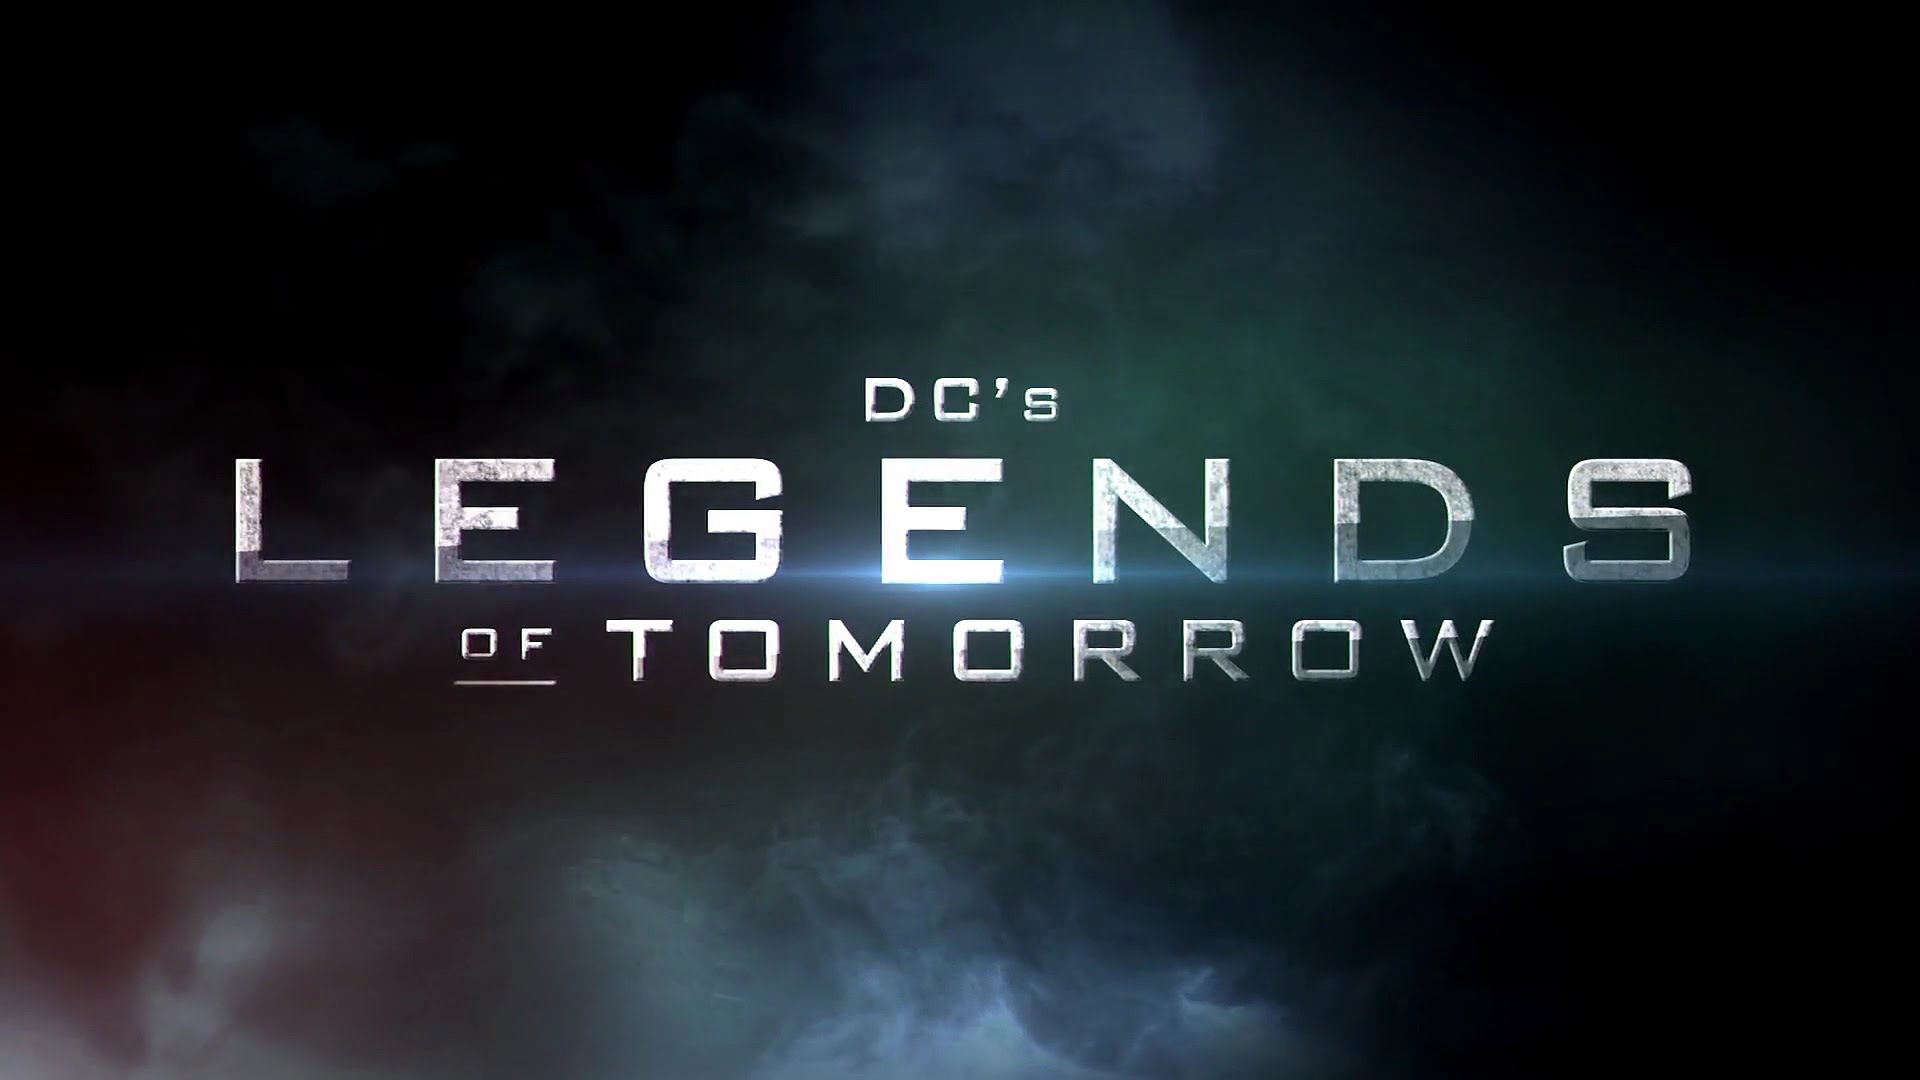 Legends of Tomorrow DC-LEGENDS-OF-TOMORROW